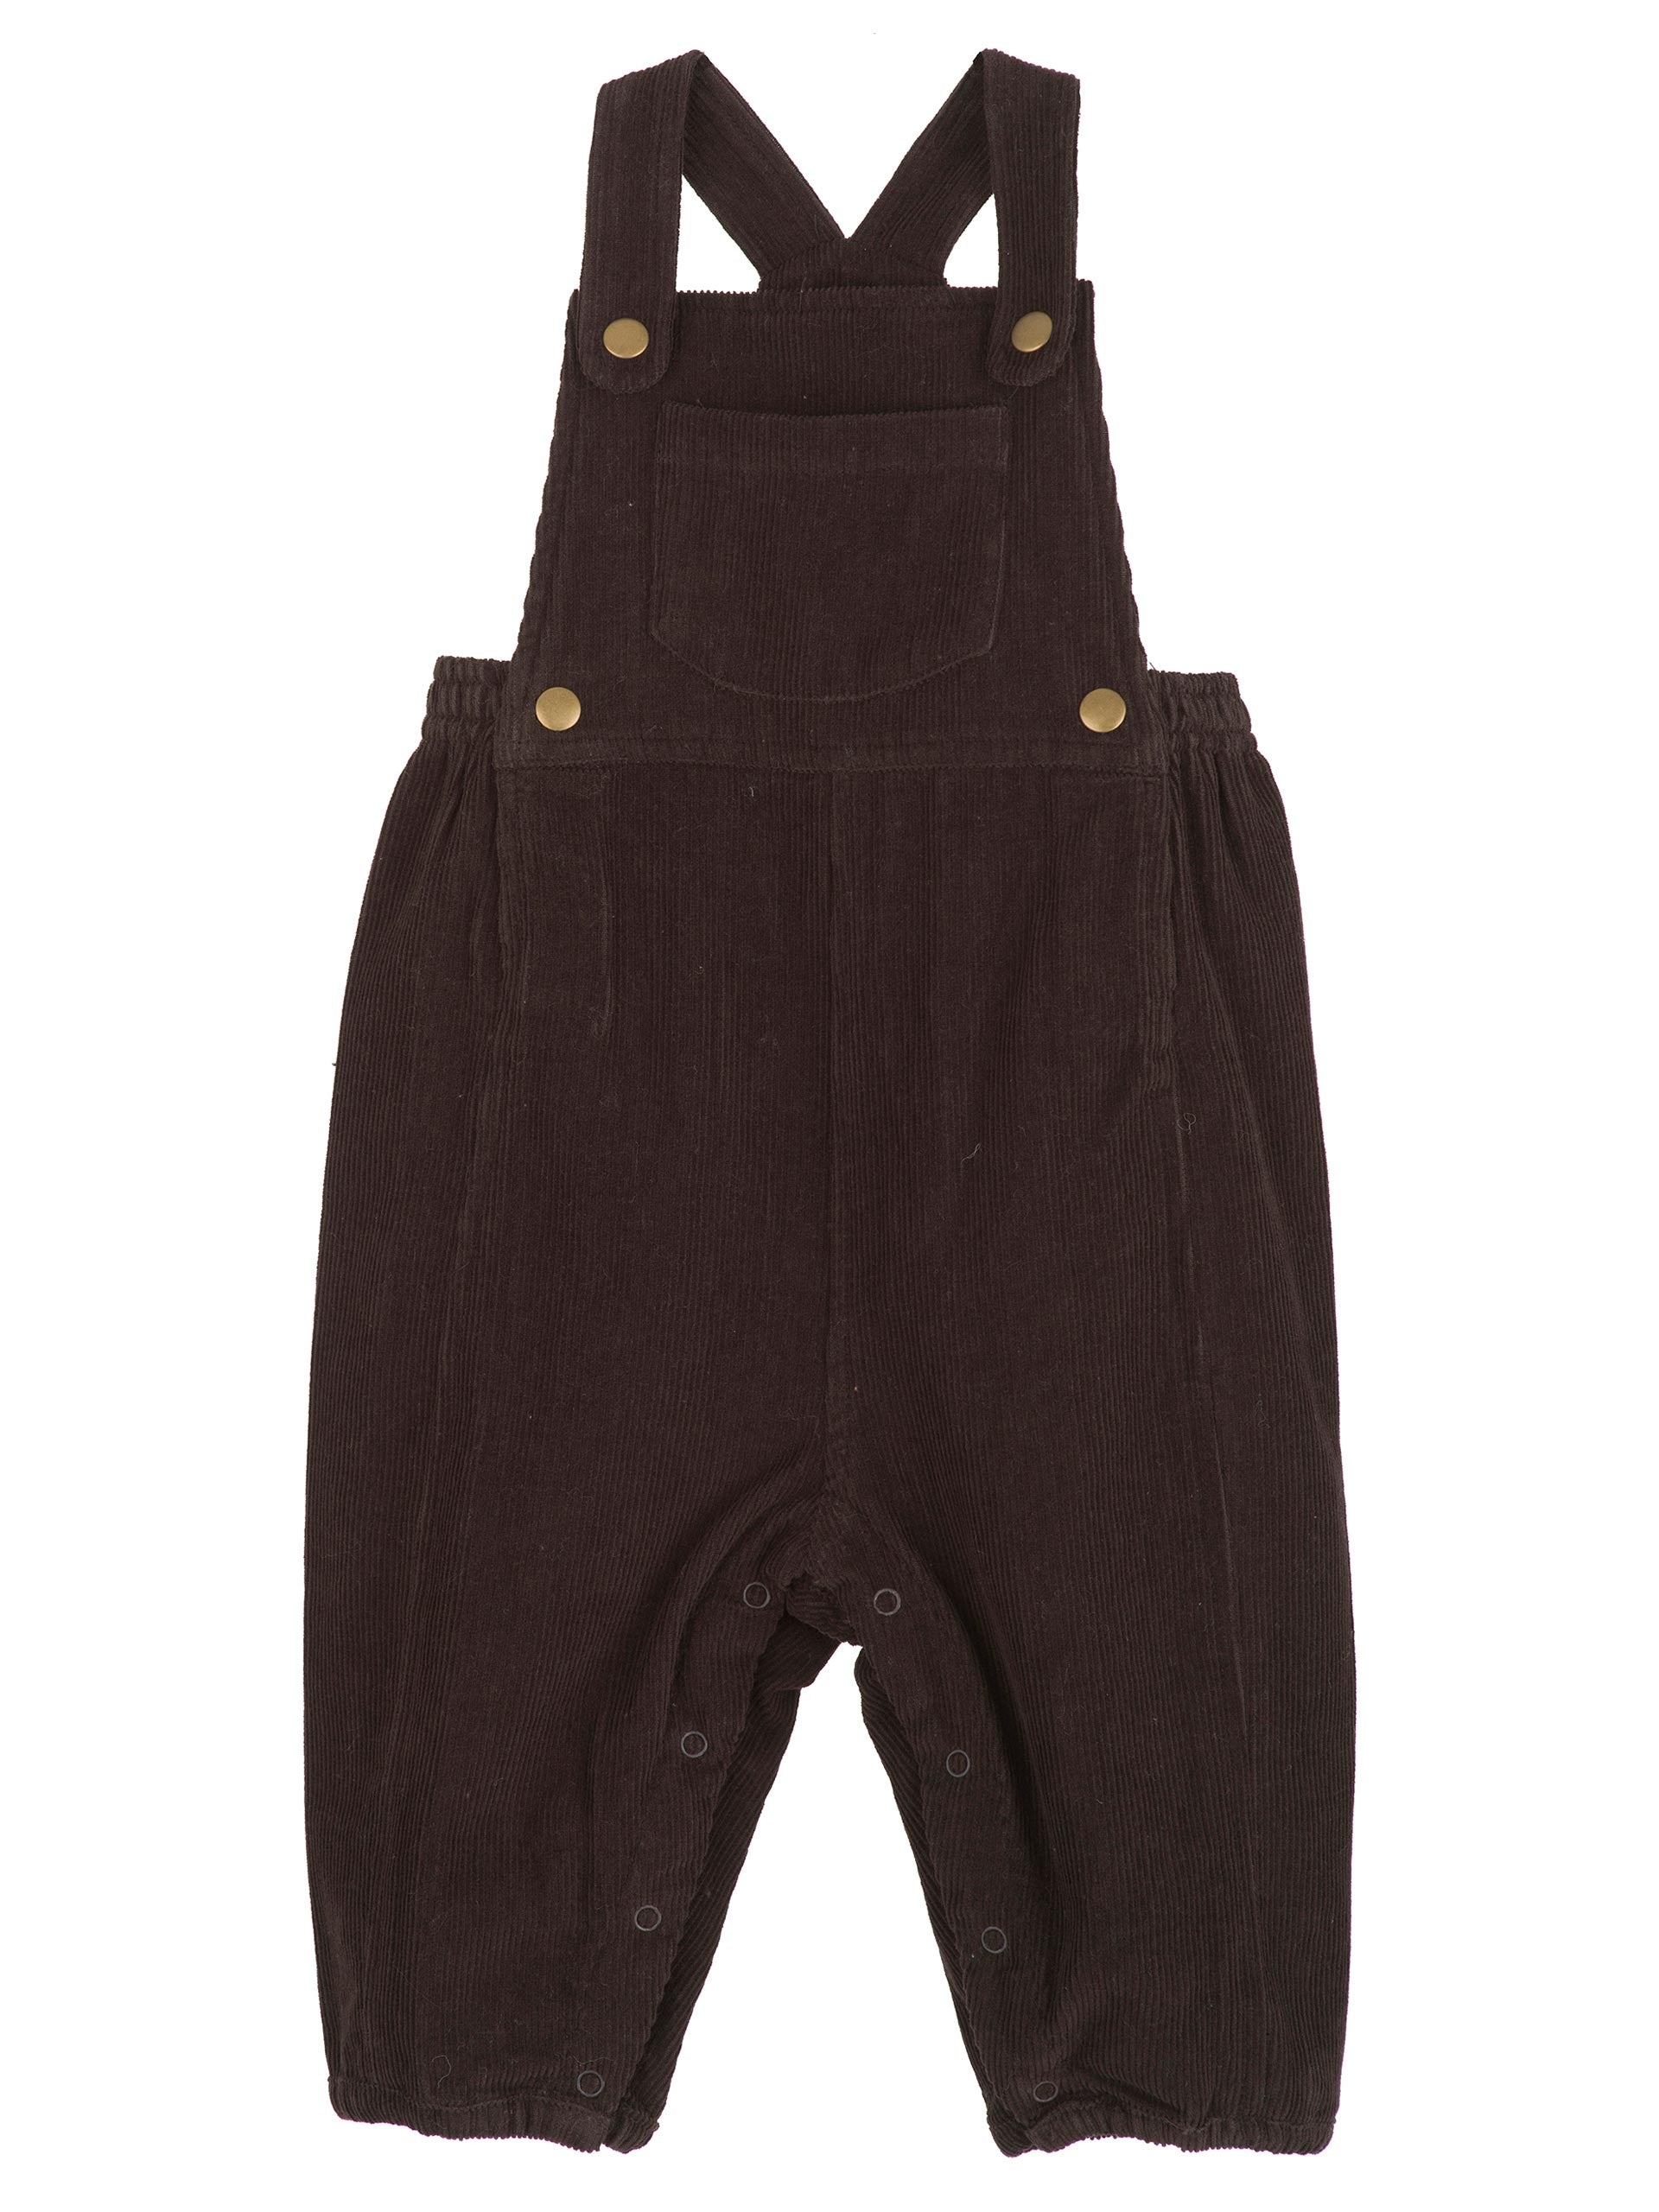 Baby Overall - Dark Brown